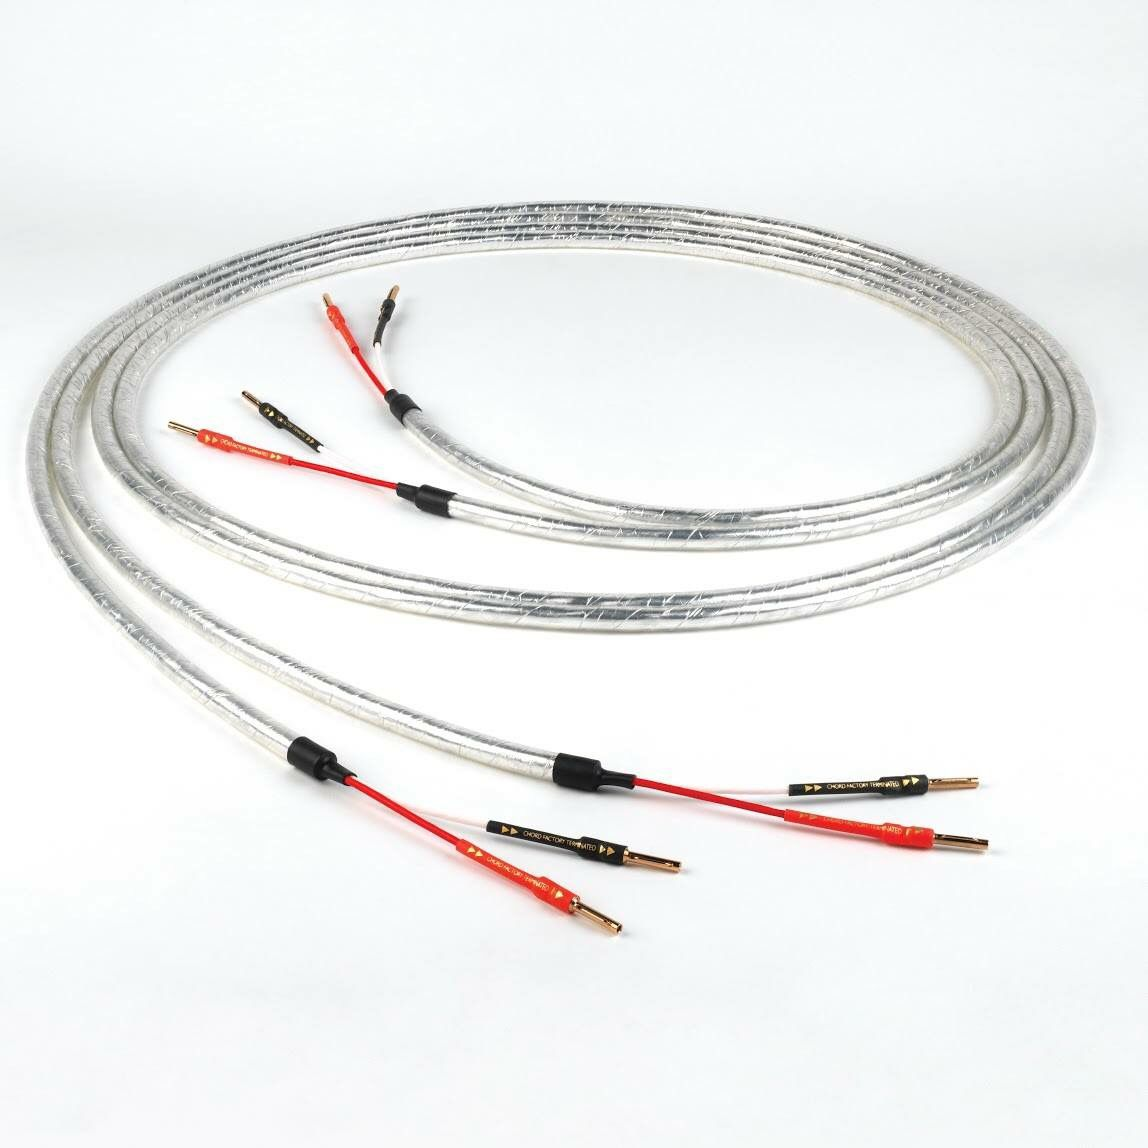 AUDIOPHILE MAN - HIFI NEWS: Chord Clearway speaker cable The Chord ...